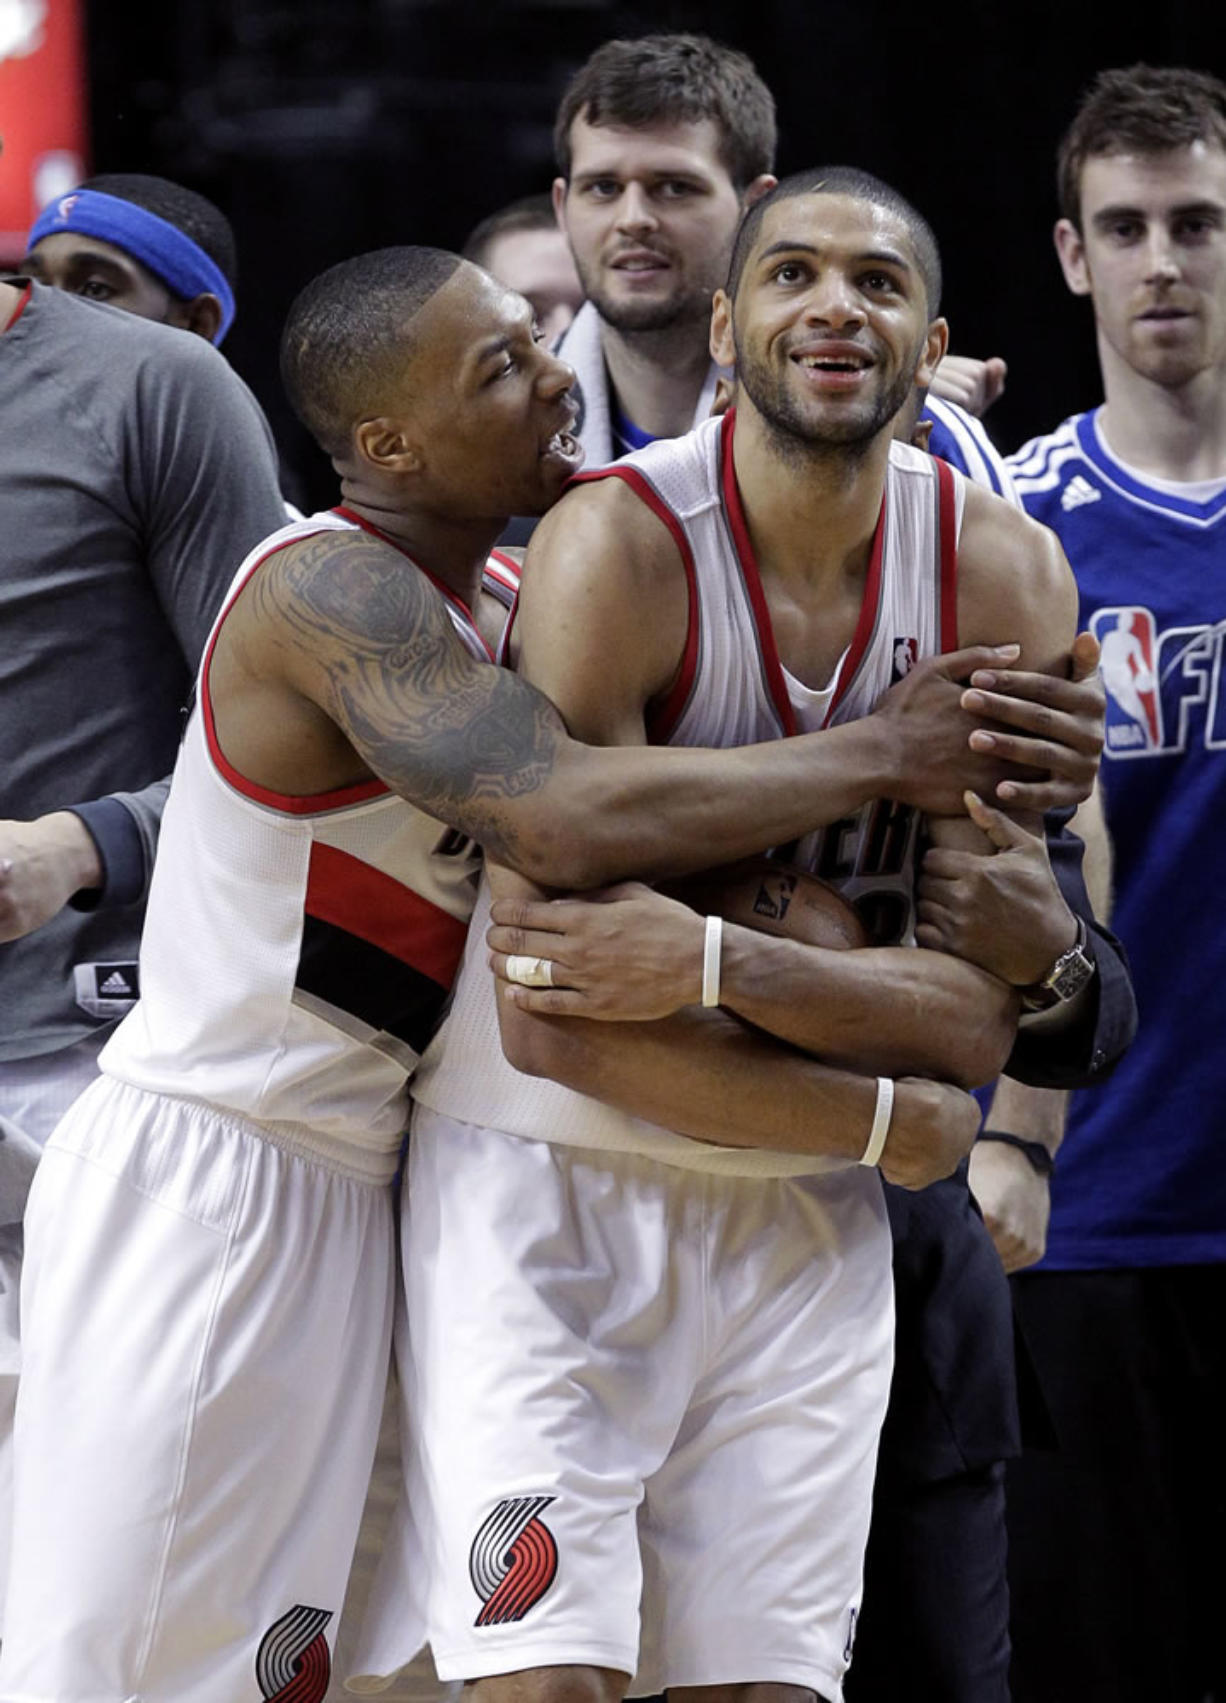 Portland Trail Blazers guard Damian Lillard, left, hugs teammate Nicolas Batum after winning an NBA basketball game against the Los Angeles Clippers in Portland, Ore., Saturday, Jan. 26, 2013.  Both players scored 20 points each as the Trail Blazers won 101-100.